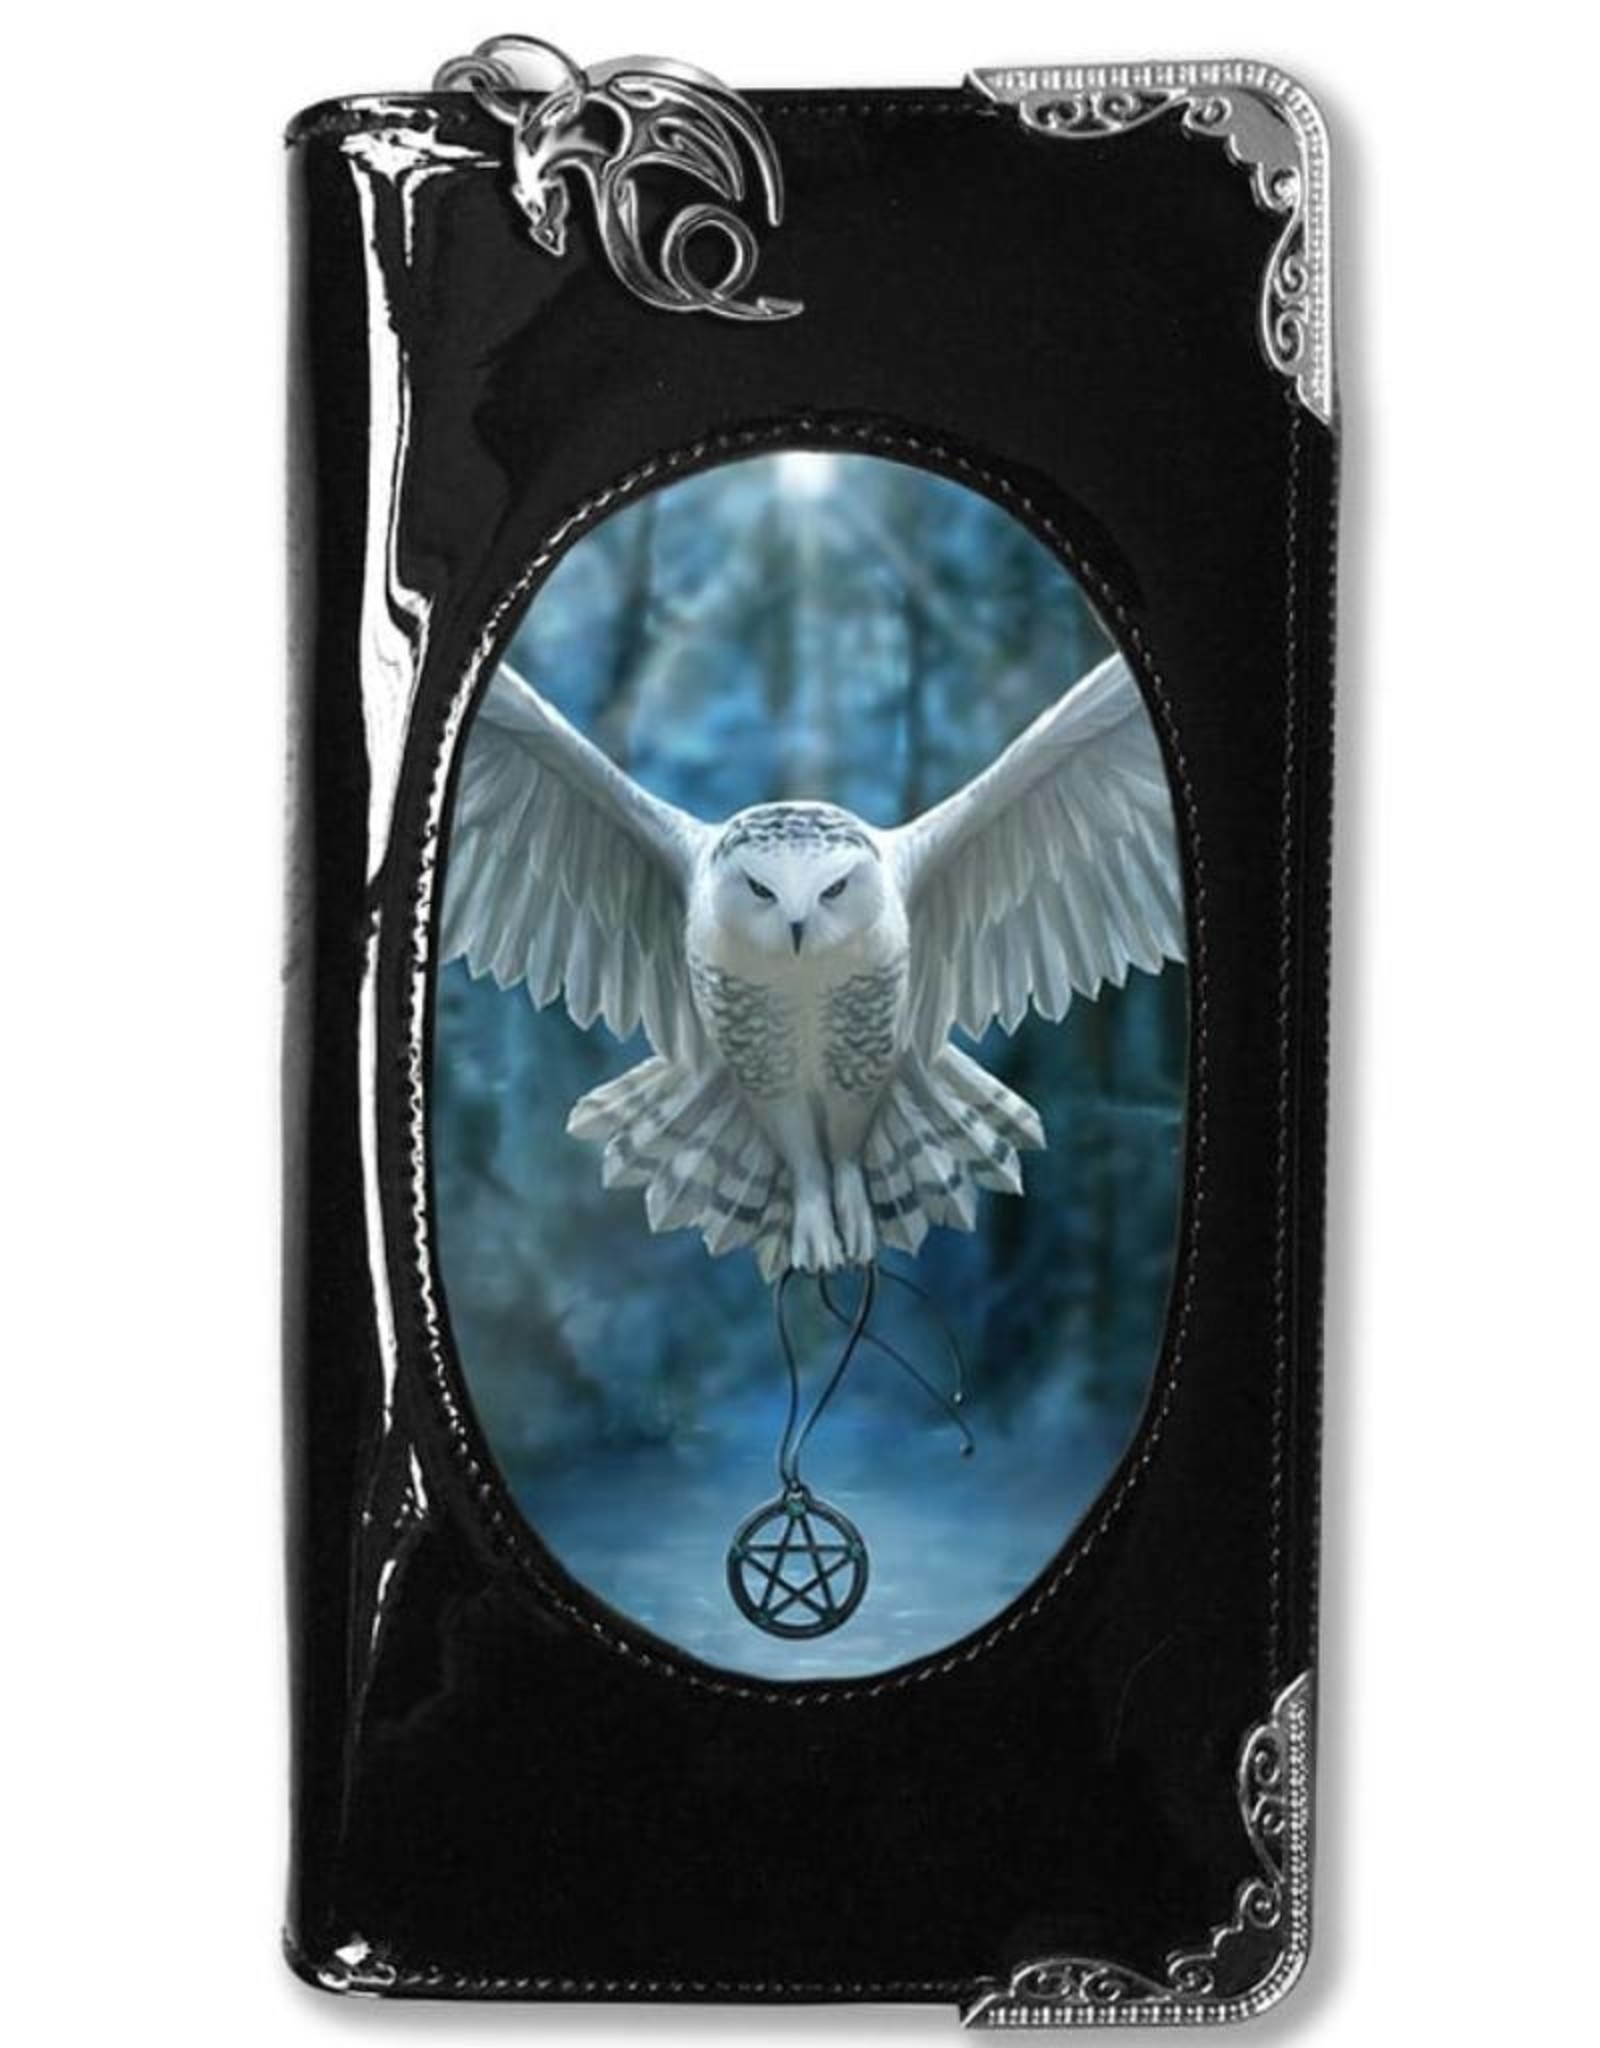 Anne Stokes Fantasy bags and wallets - Anne Stokes 3D lenticular purse  Awaken Your Magic